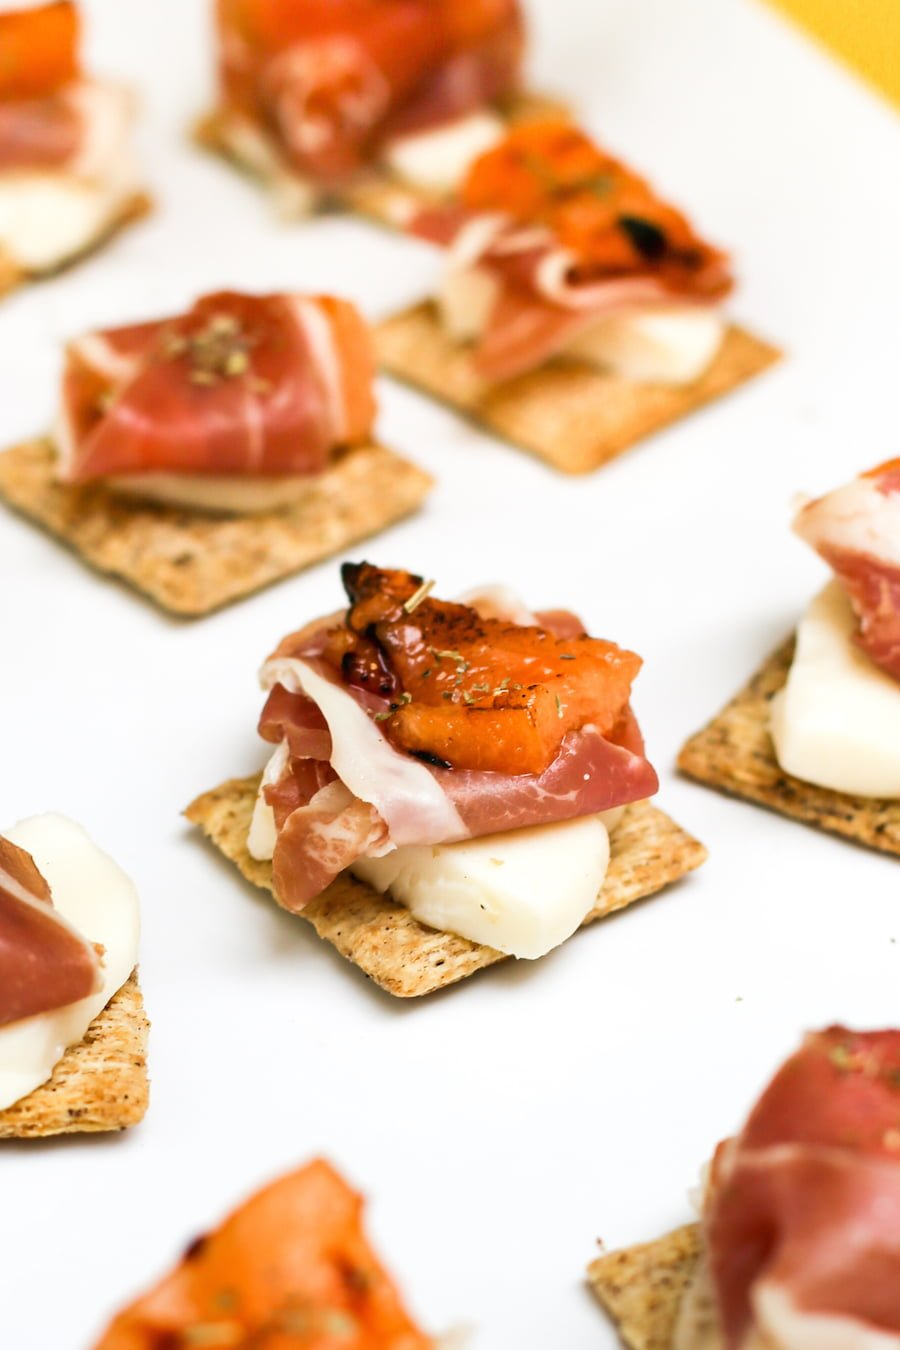 Cantaproscimozzcuits. That's grilled cantaloupe with prosciutto and mozzarella cheese on a TRISCUIT.